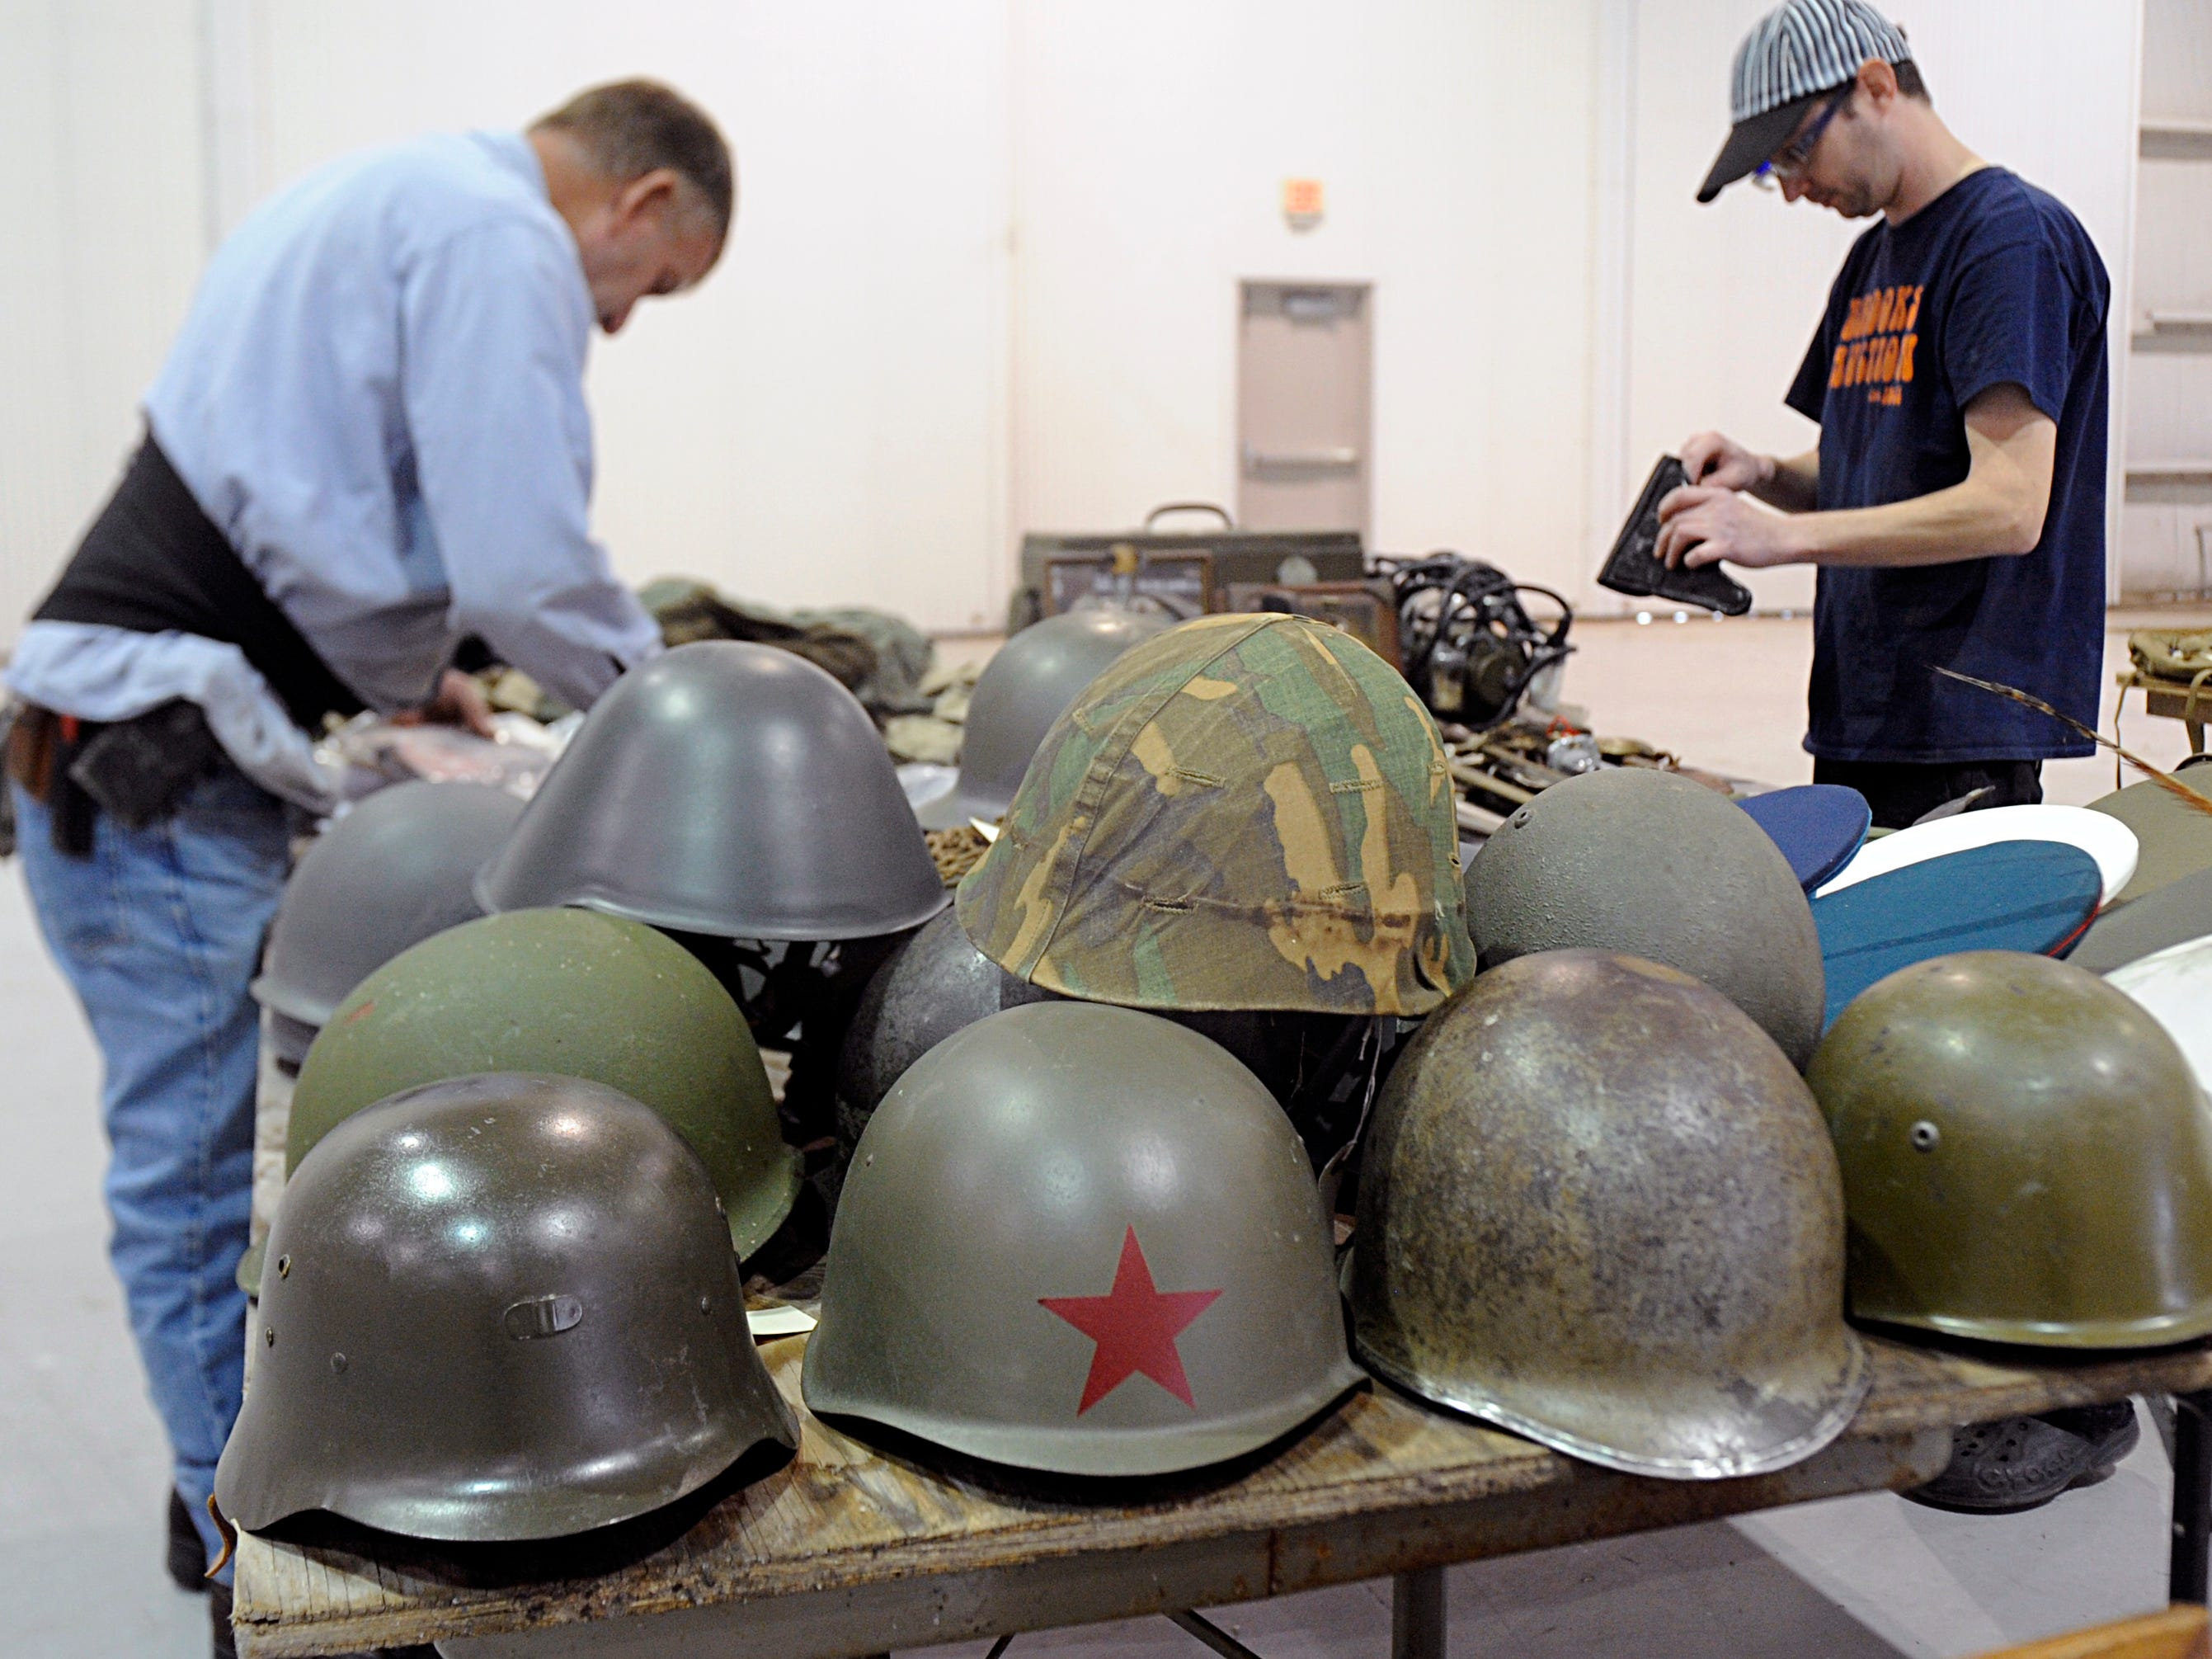 Brooks Auction staff set up items including practice bombs, artillery, swords and daggers for a military antiques auction at Millville Executive Airport.